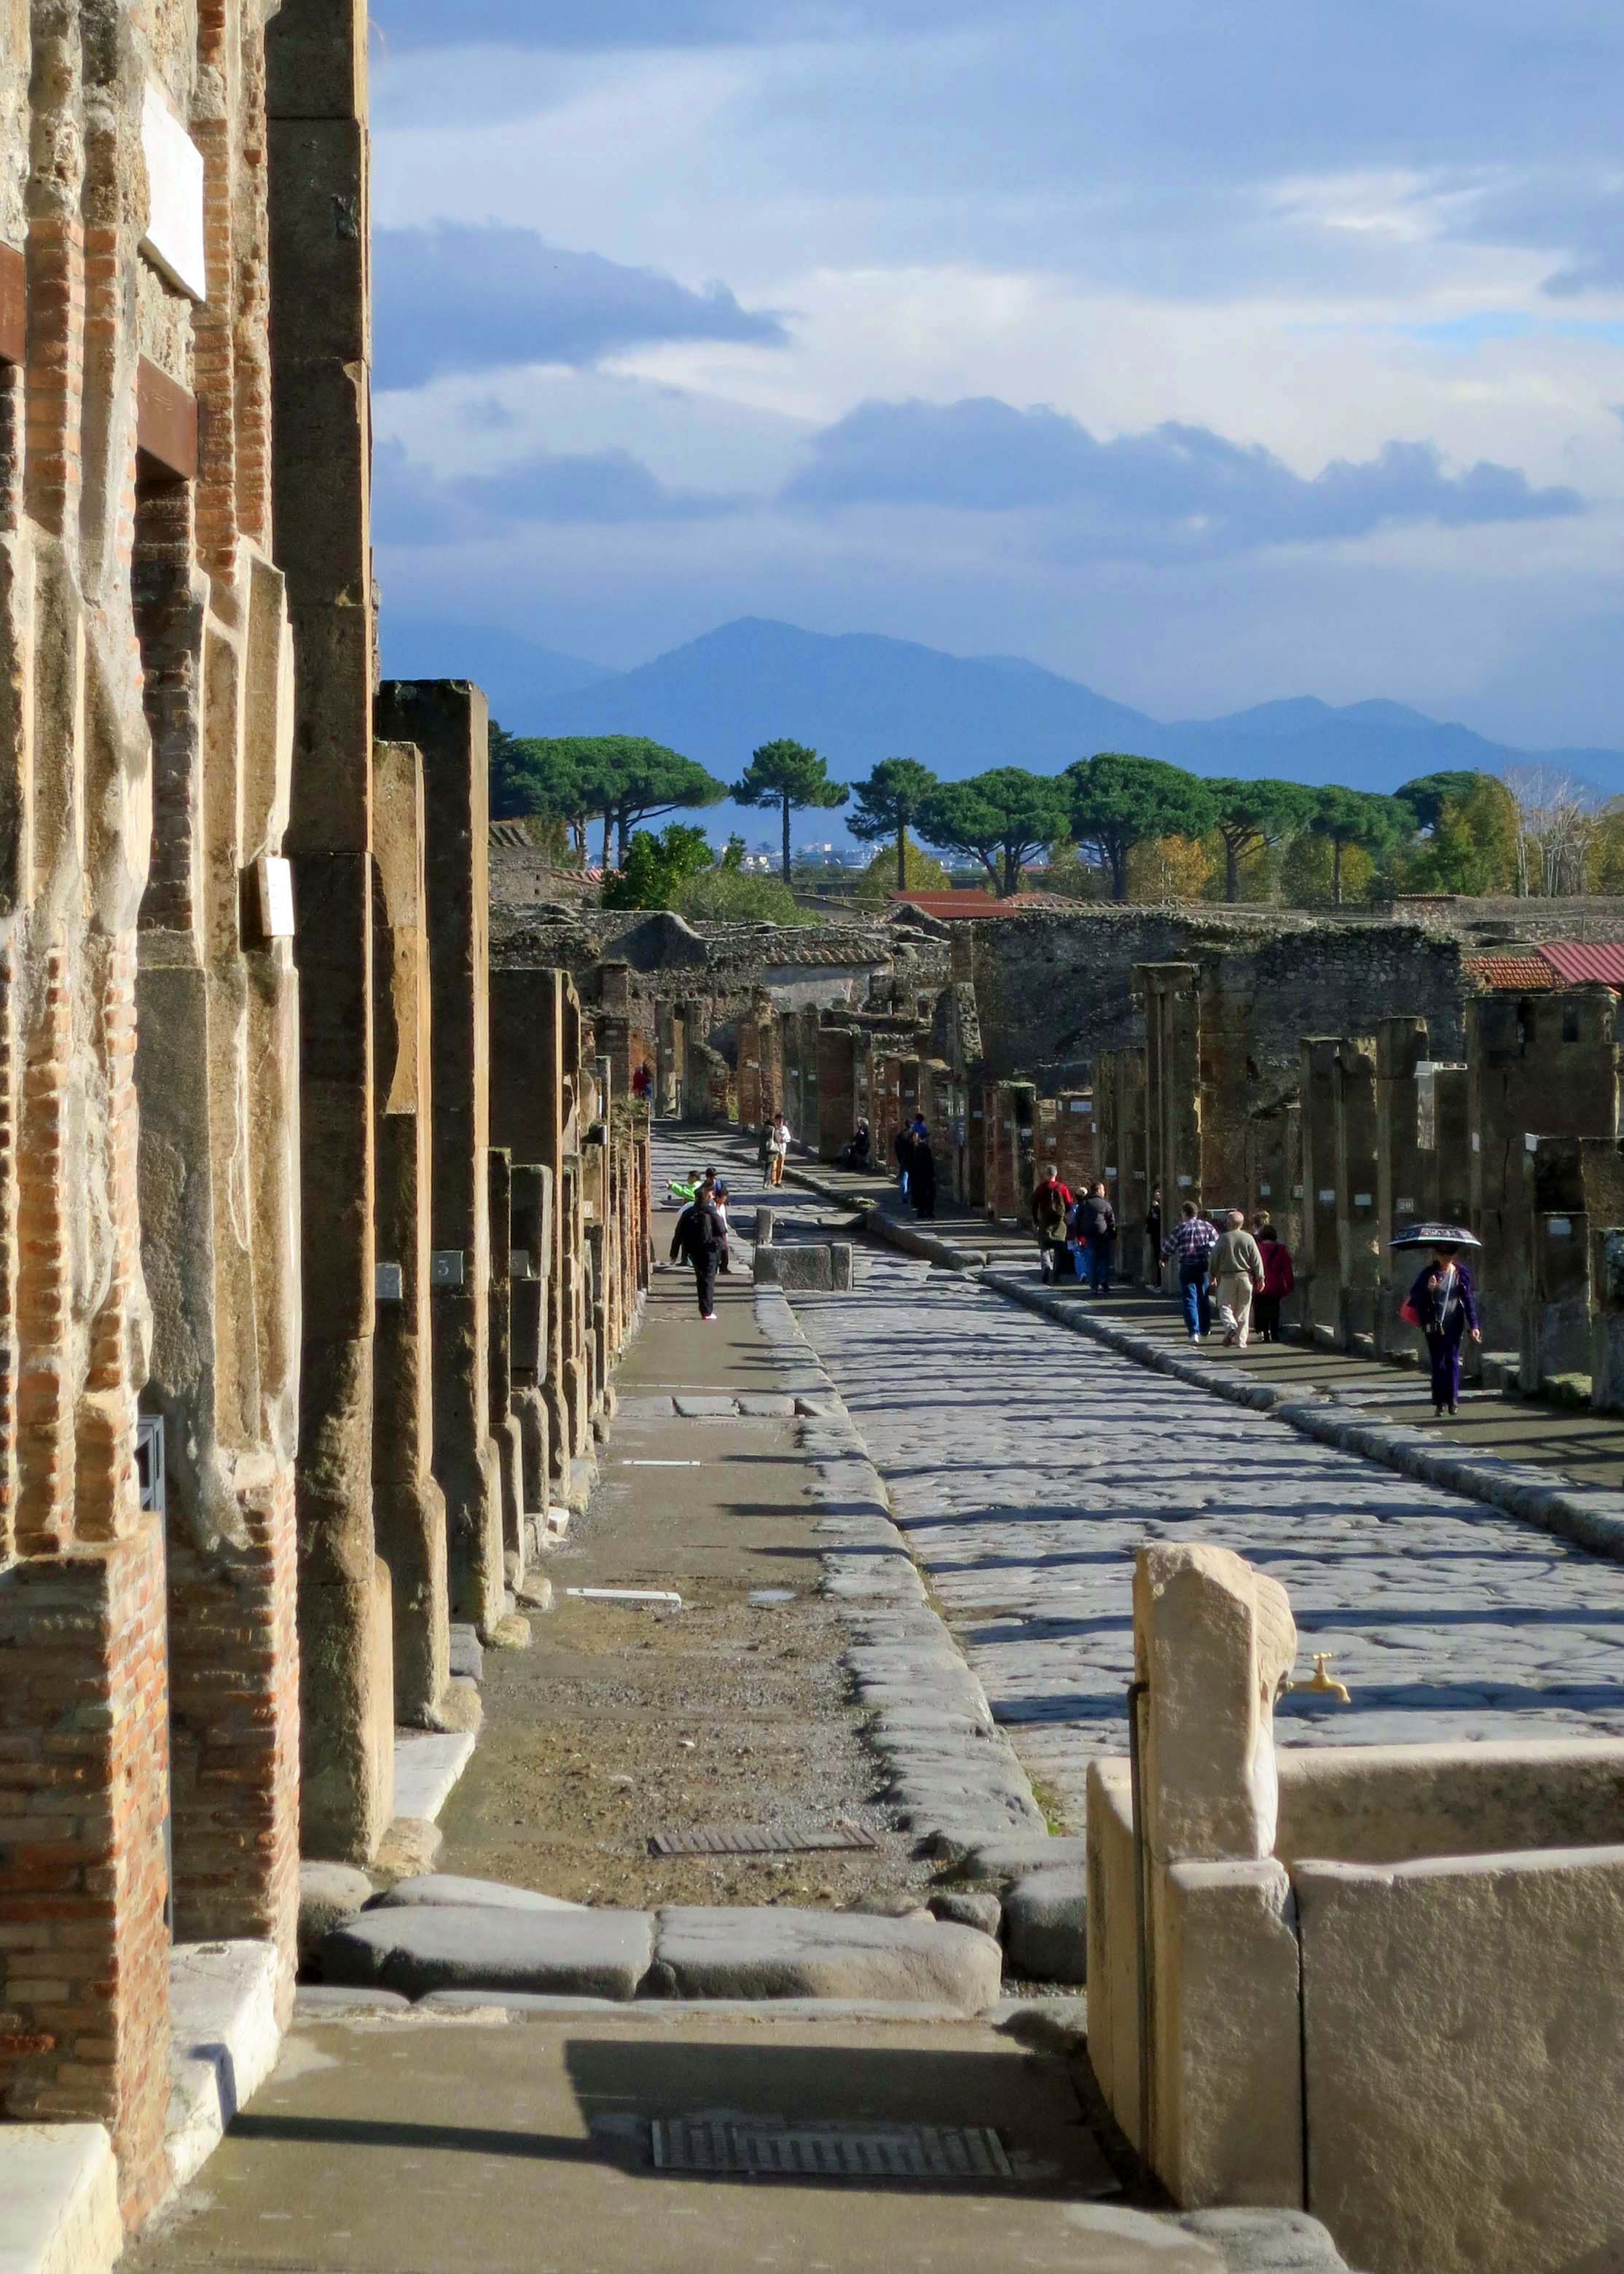 The walls and streets of Pompeii are amazingly well preserved.